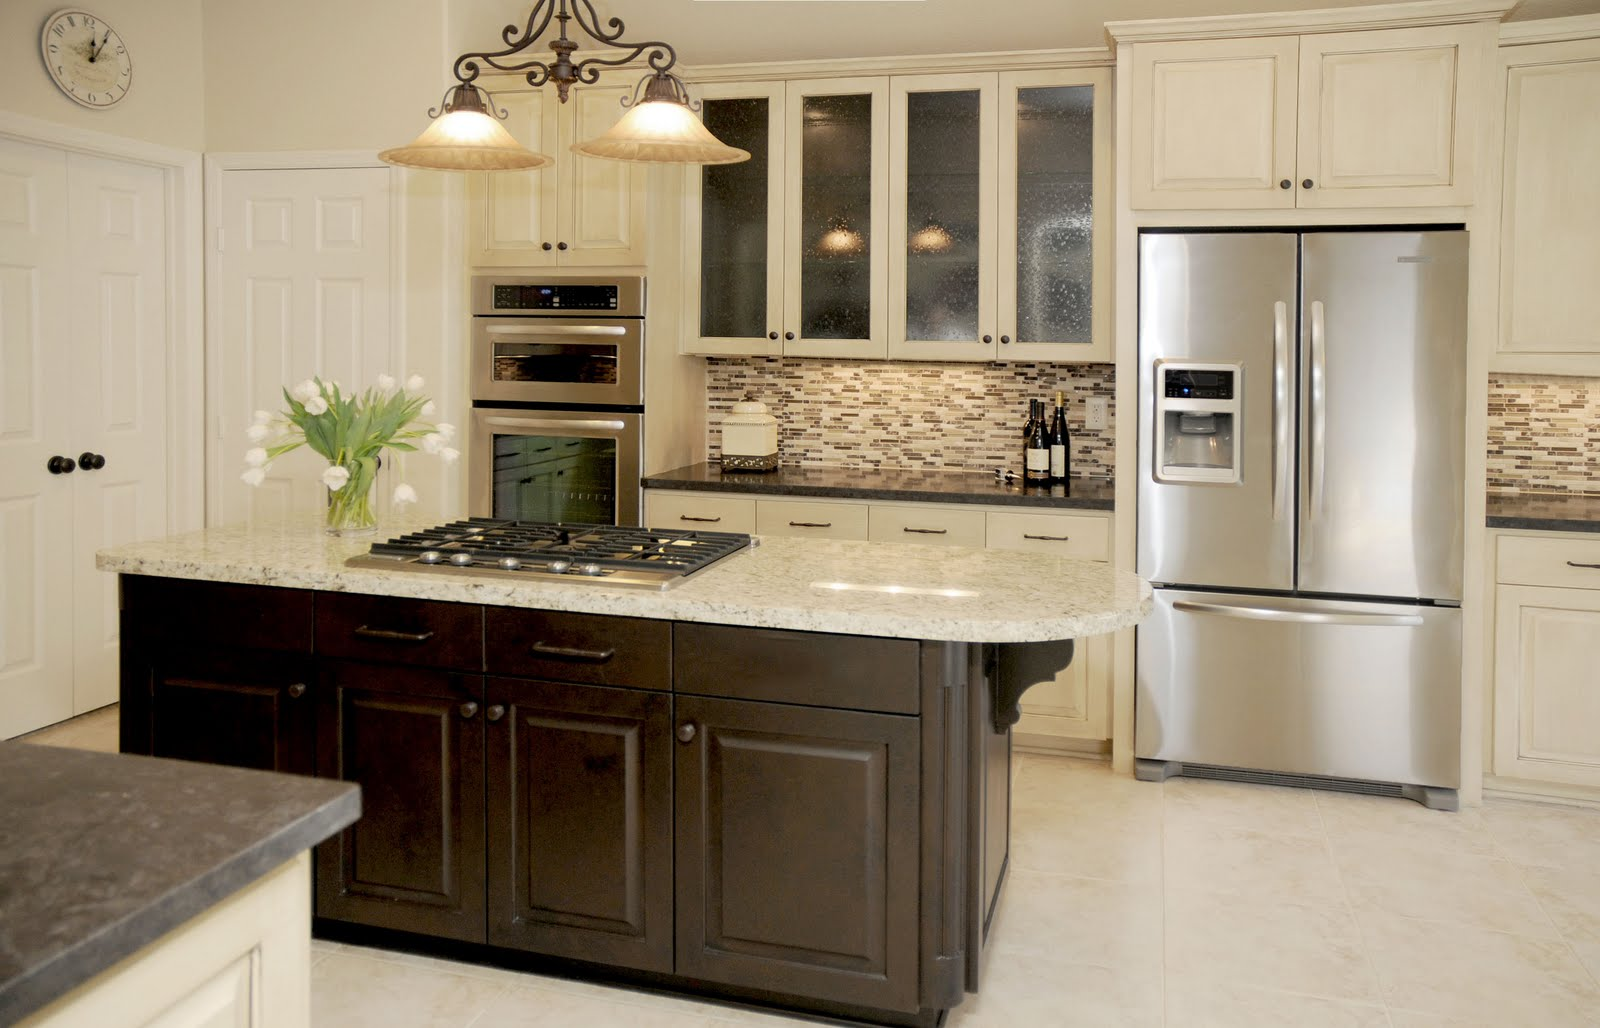 Galley Kitchen Remodels Before And After  Kitchen Design